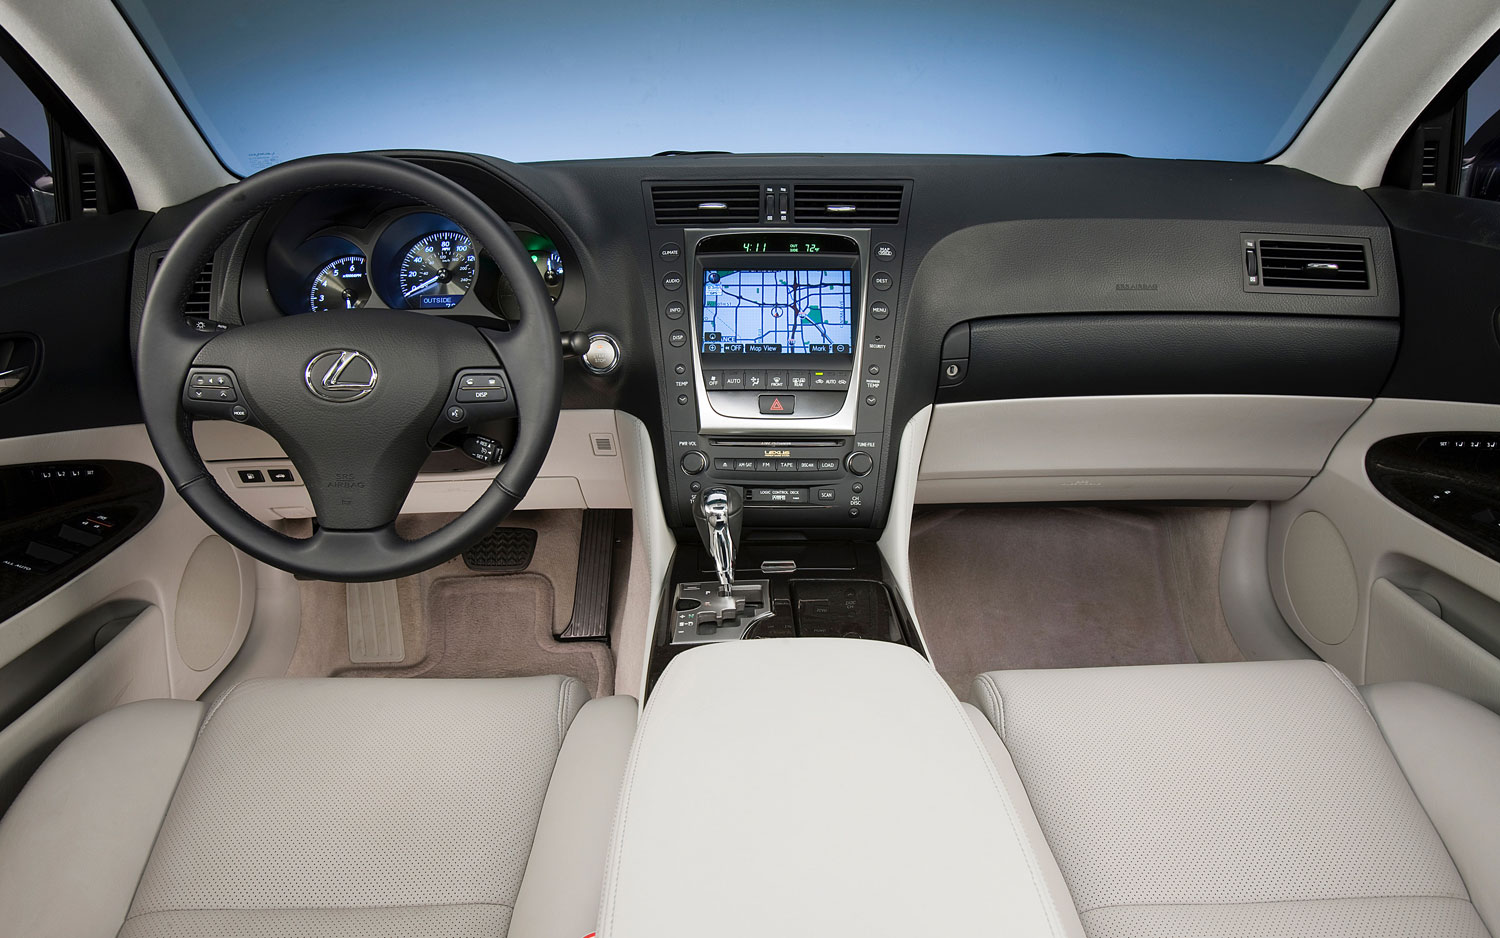 2011 lexus gs350 awd - editors' notebook - automobile magazine